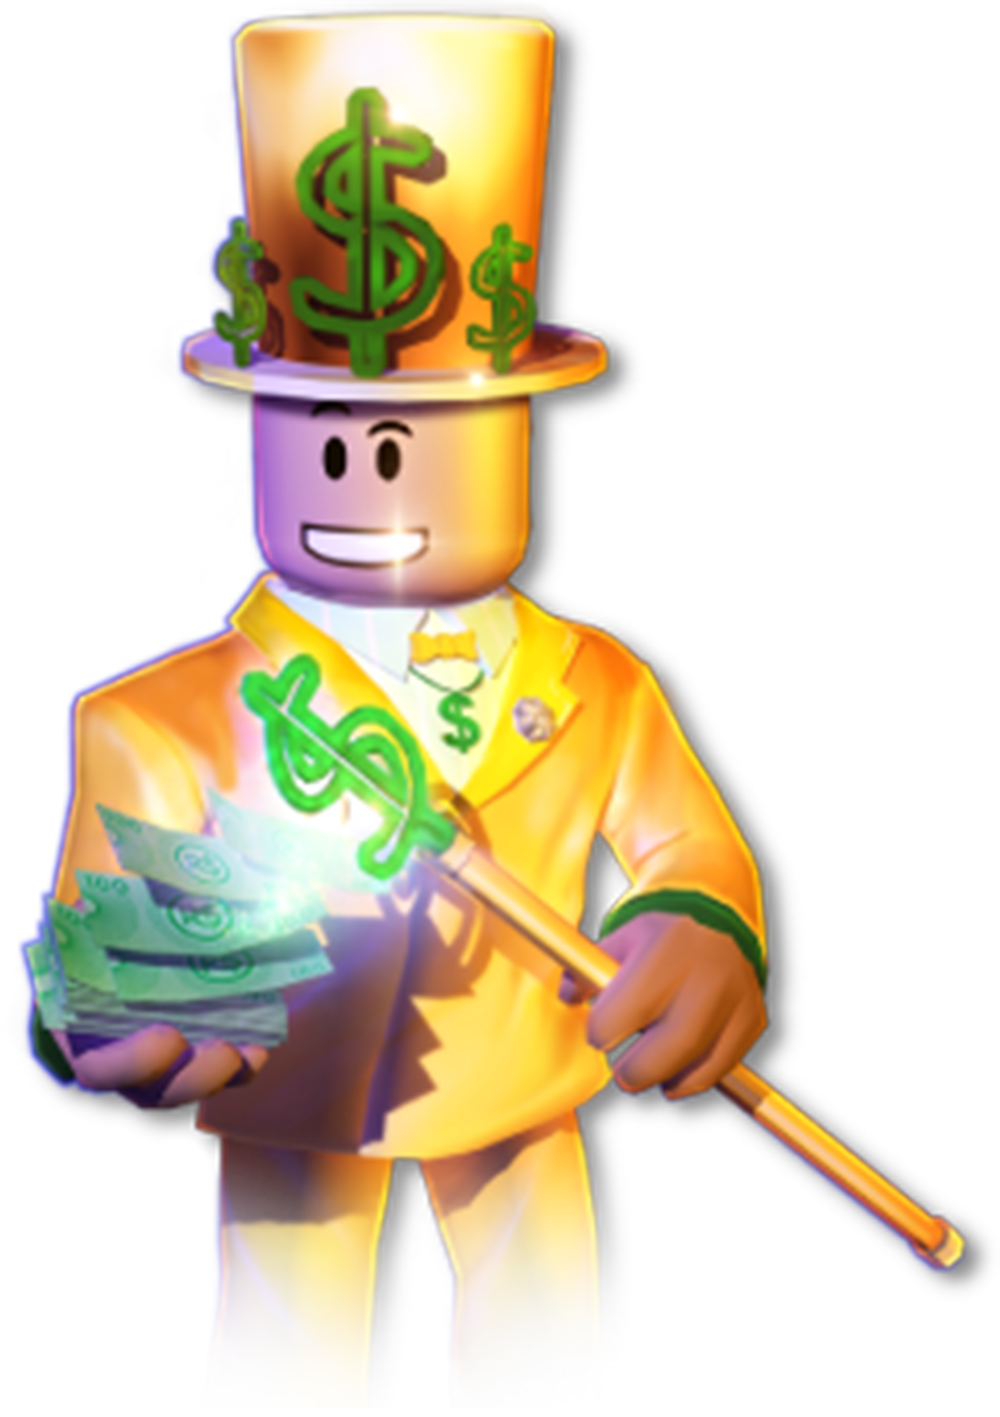 Roblox Gift Xzy Earn Free Robux By Doing Simple Tasks Rbxplace Xyz